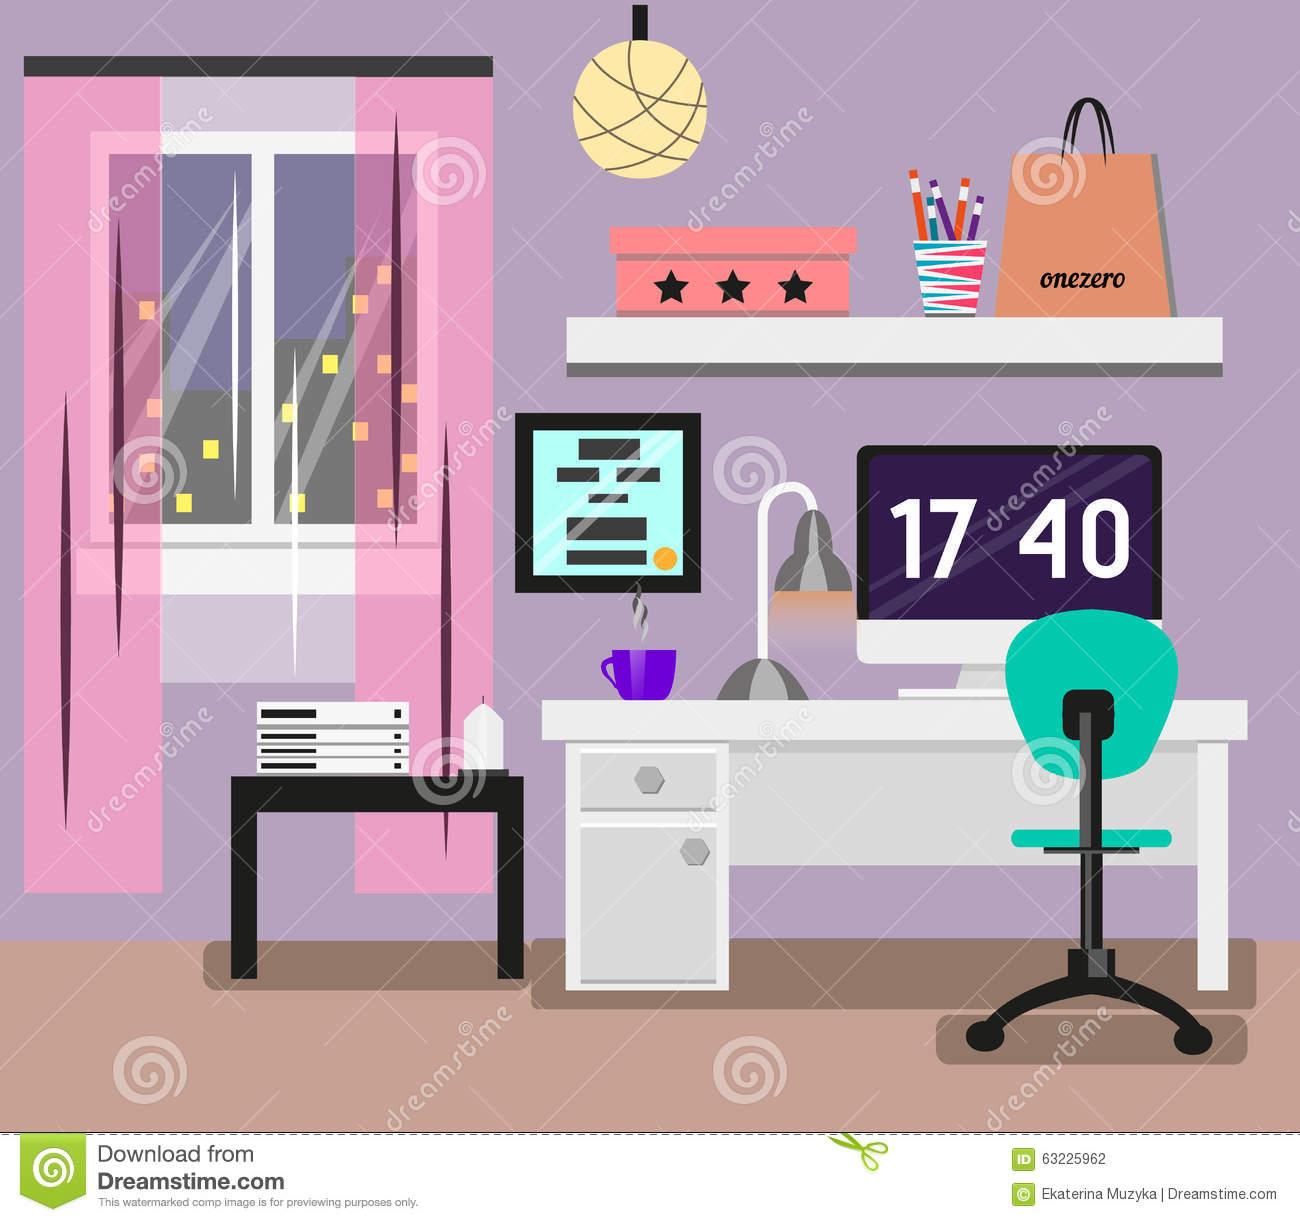 Image of: Bedroom Interior Flat Design Room In Pink Colors With Window Computer Desk Chair Lamp Modern Illustration Stock Illustration Illustration Of Accessories Design 63225962